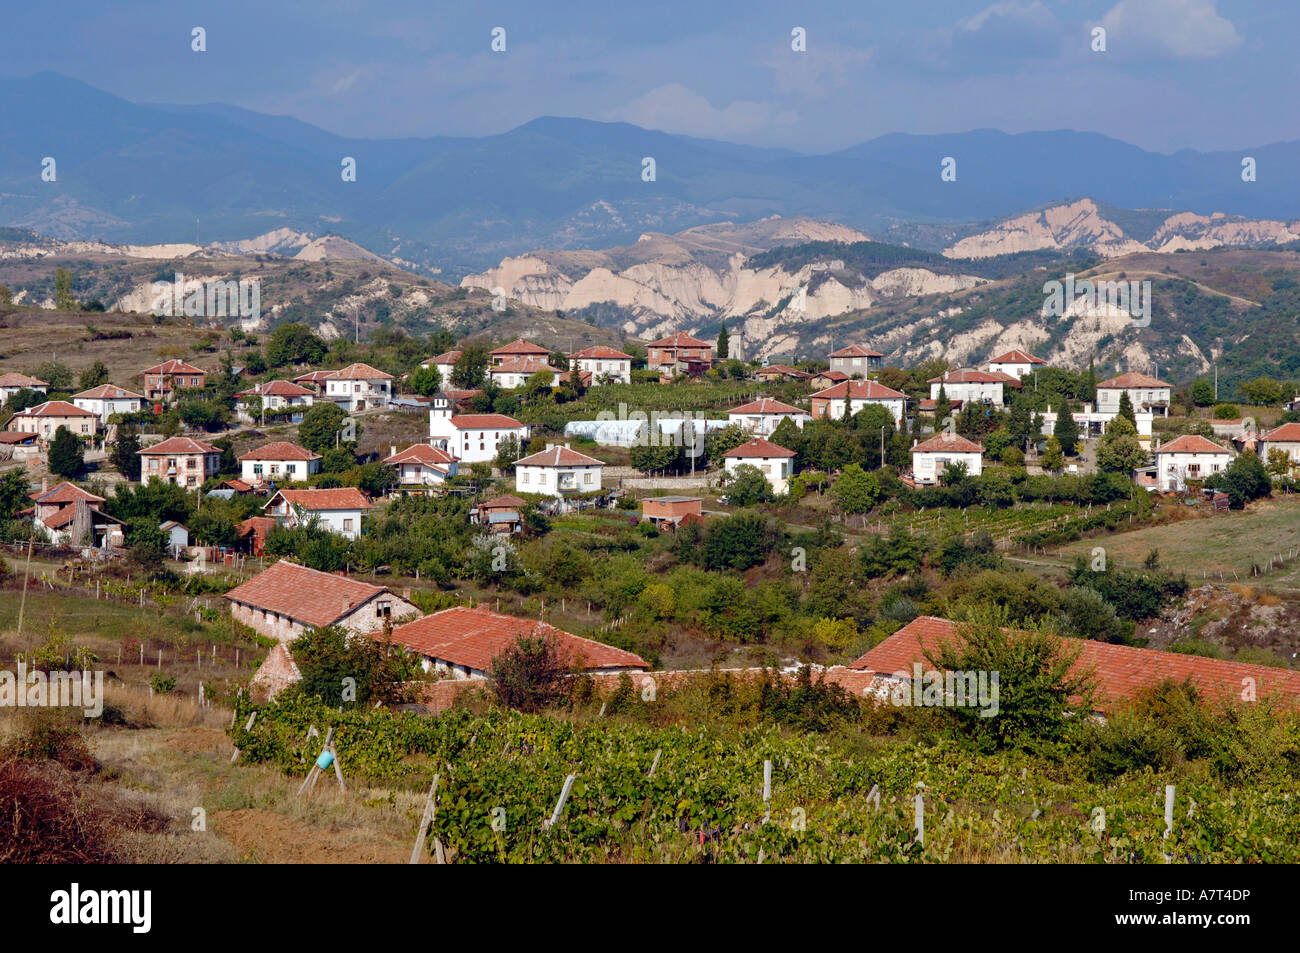 Houses in valley, Bulgaria - Stock Image